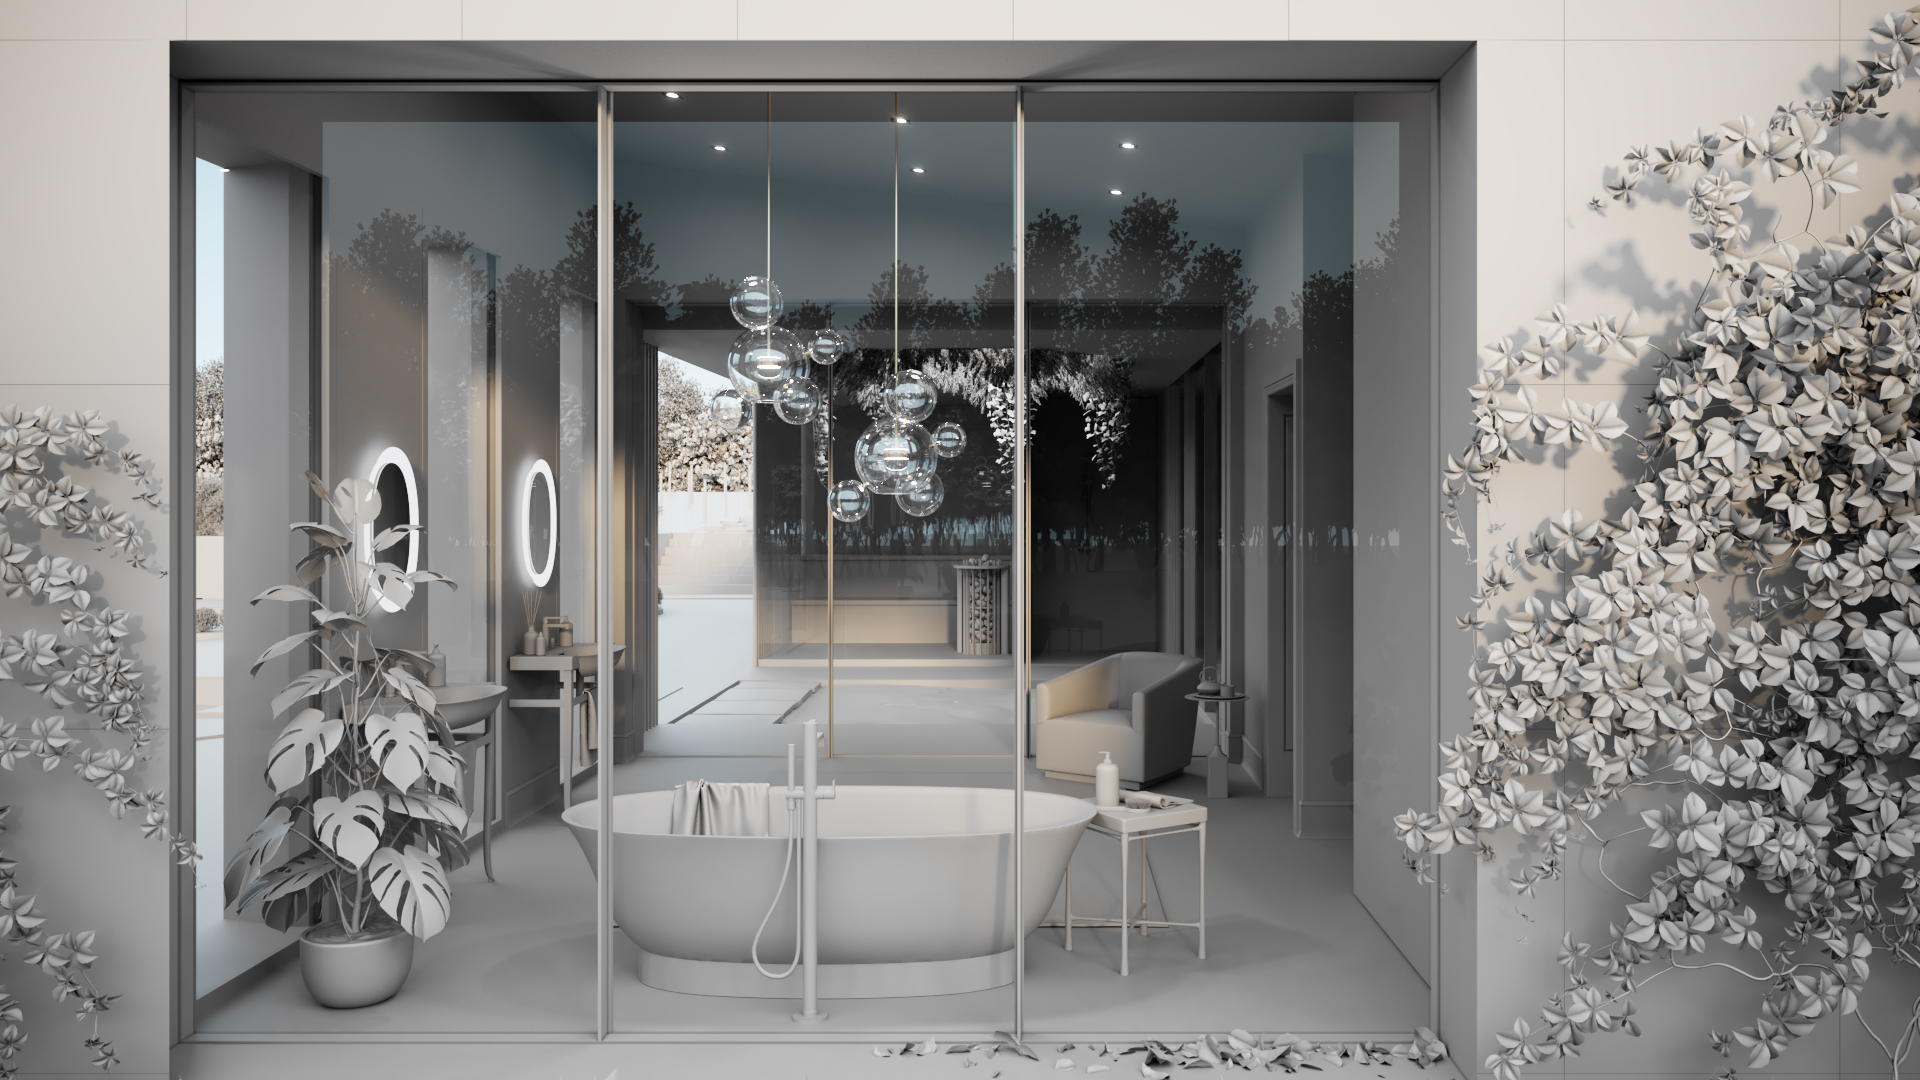 Grayscale 3D Visualization of a Bathroom